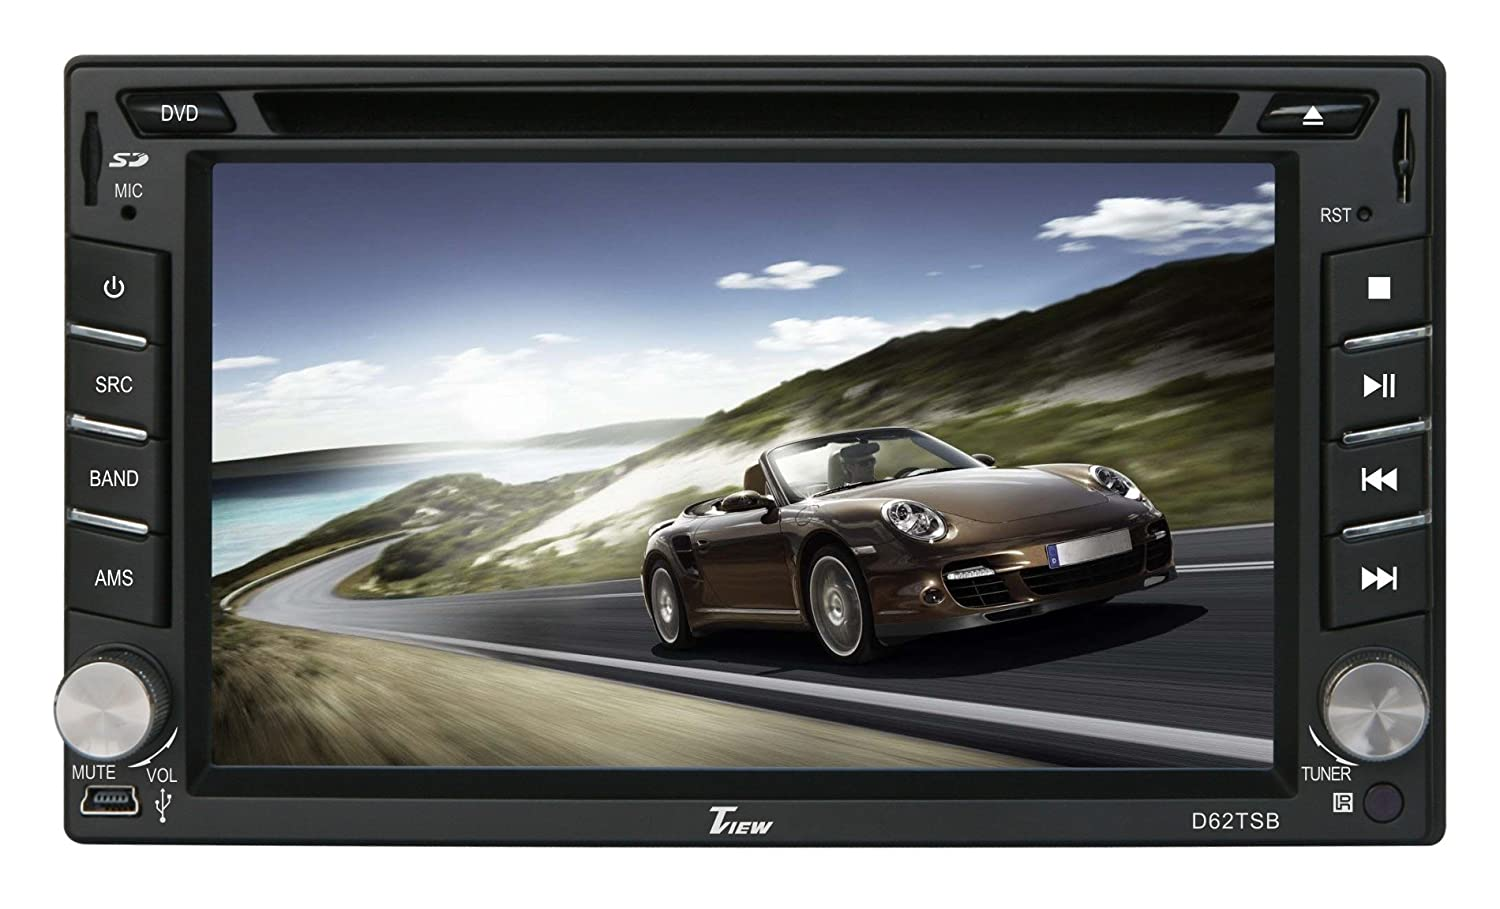 71N8 eVkMJL._SL1500_ amazon com tview d62tsb 6 2 inch double din touch screen with tview d75tsb wiring harness at bayanpartner.co